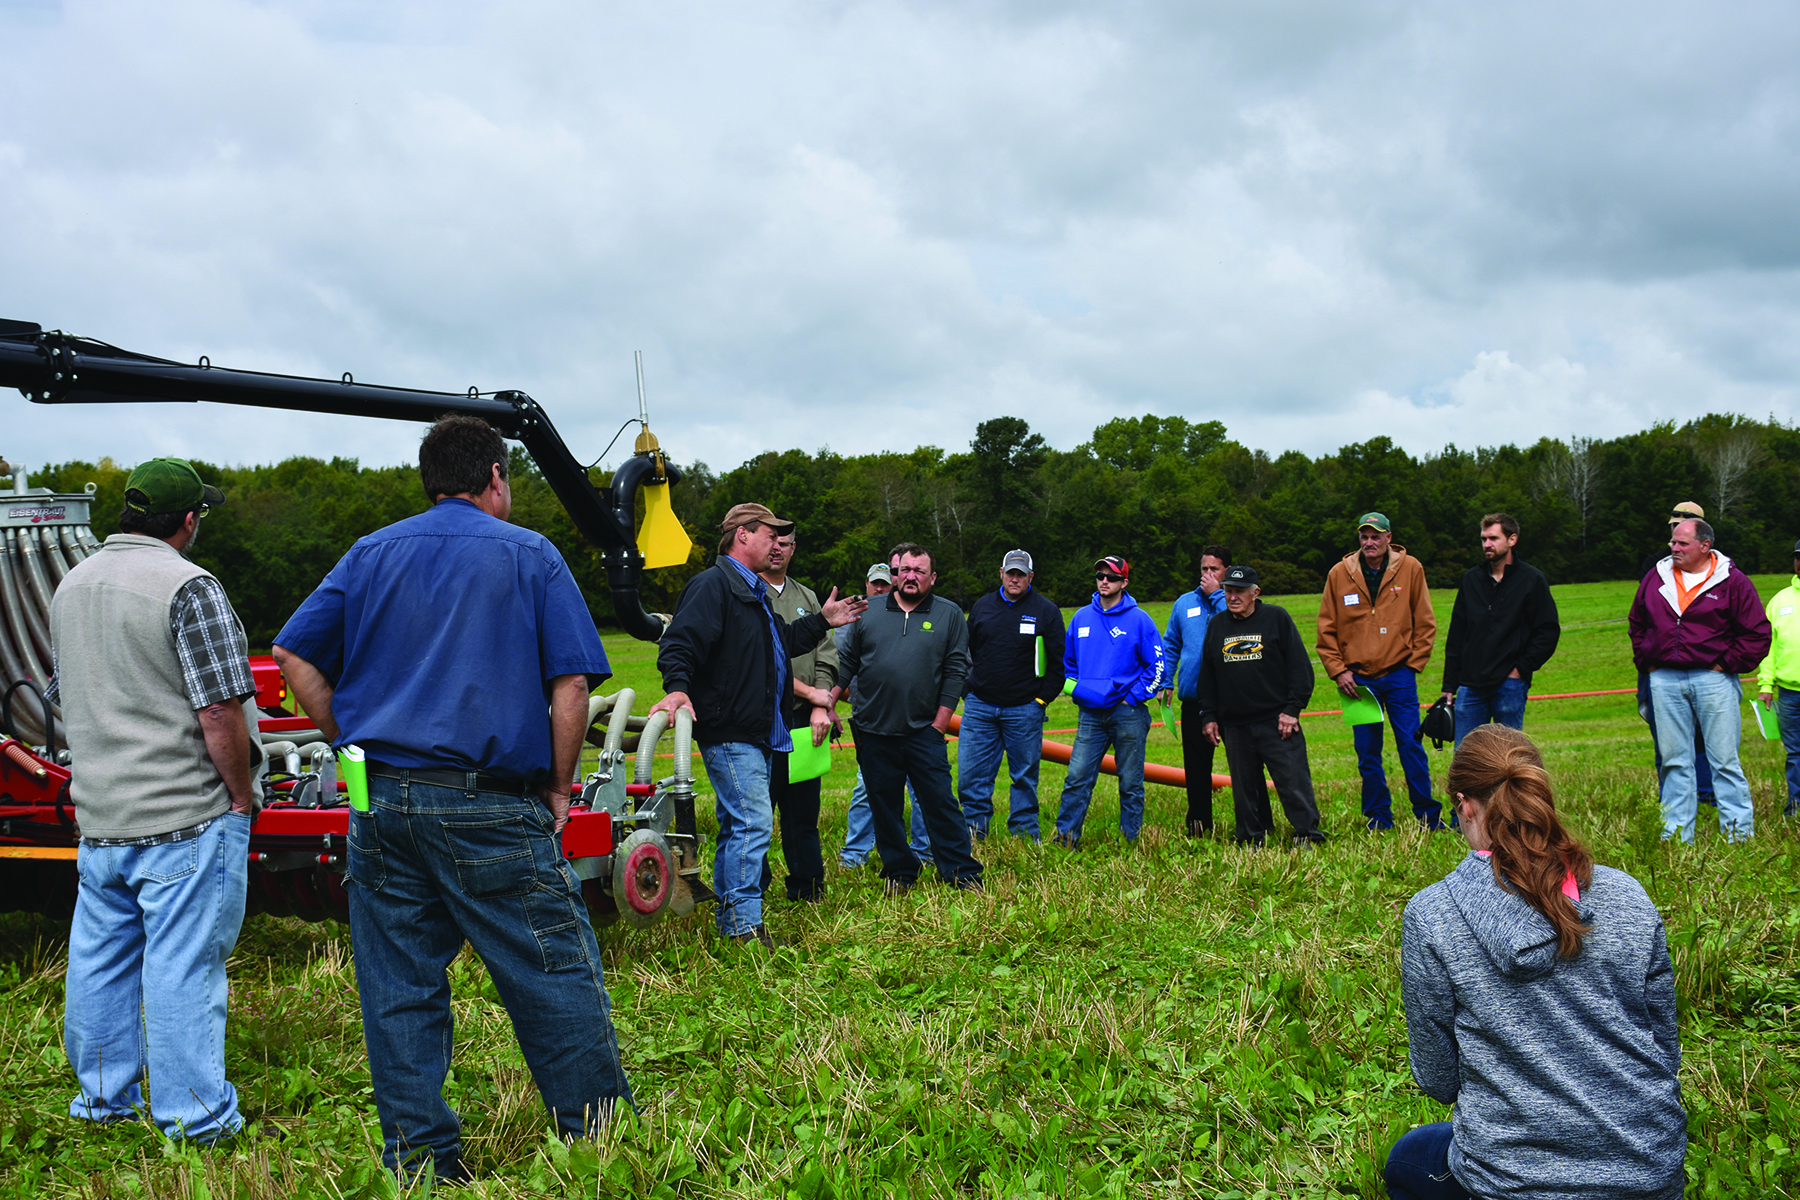 Participants view manure applications